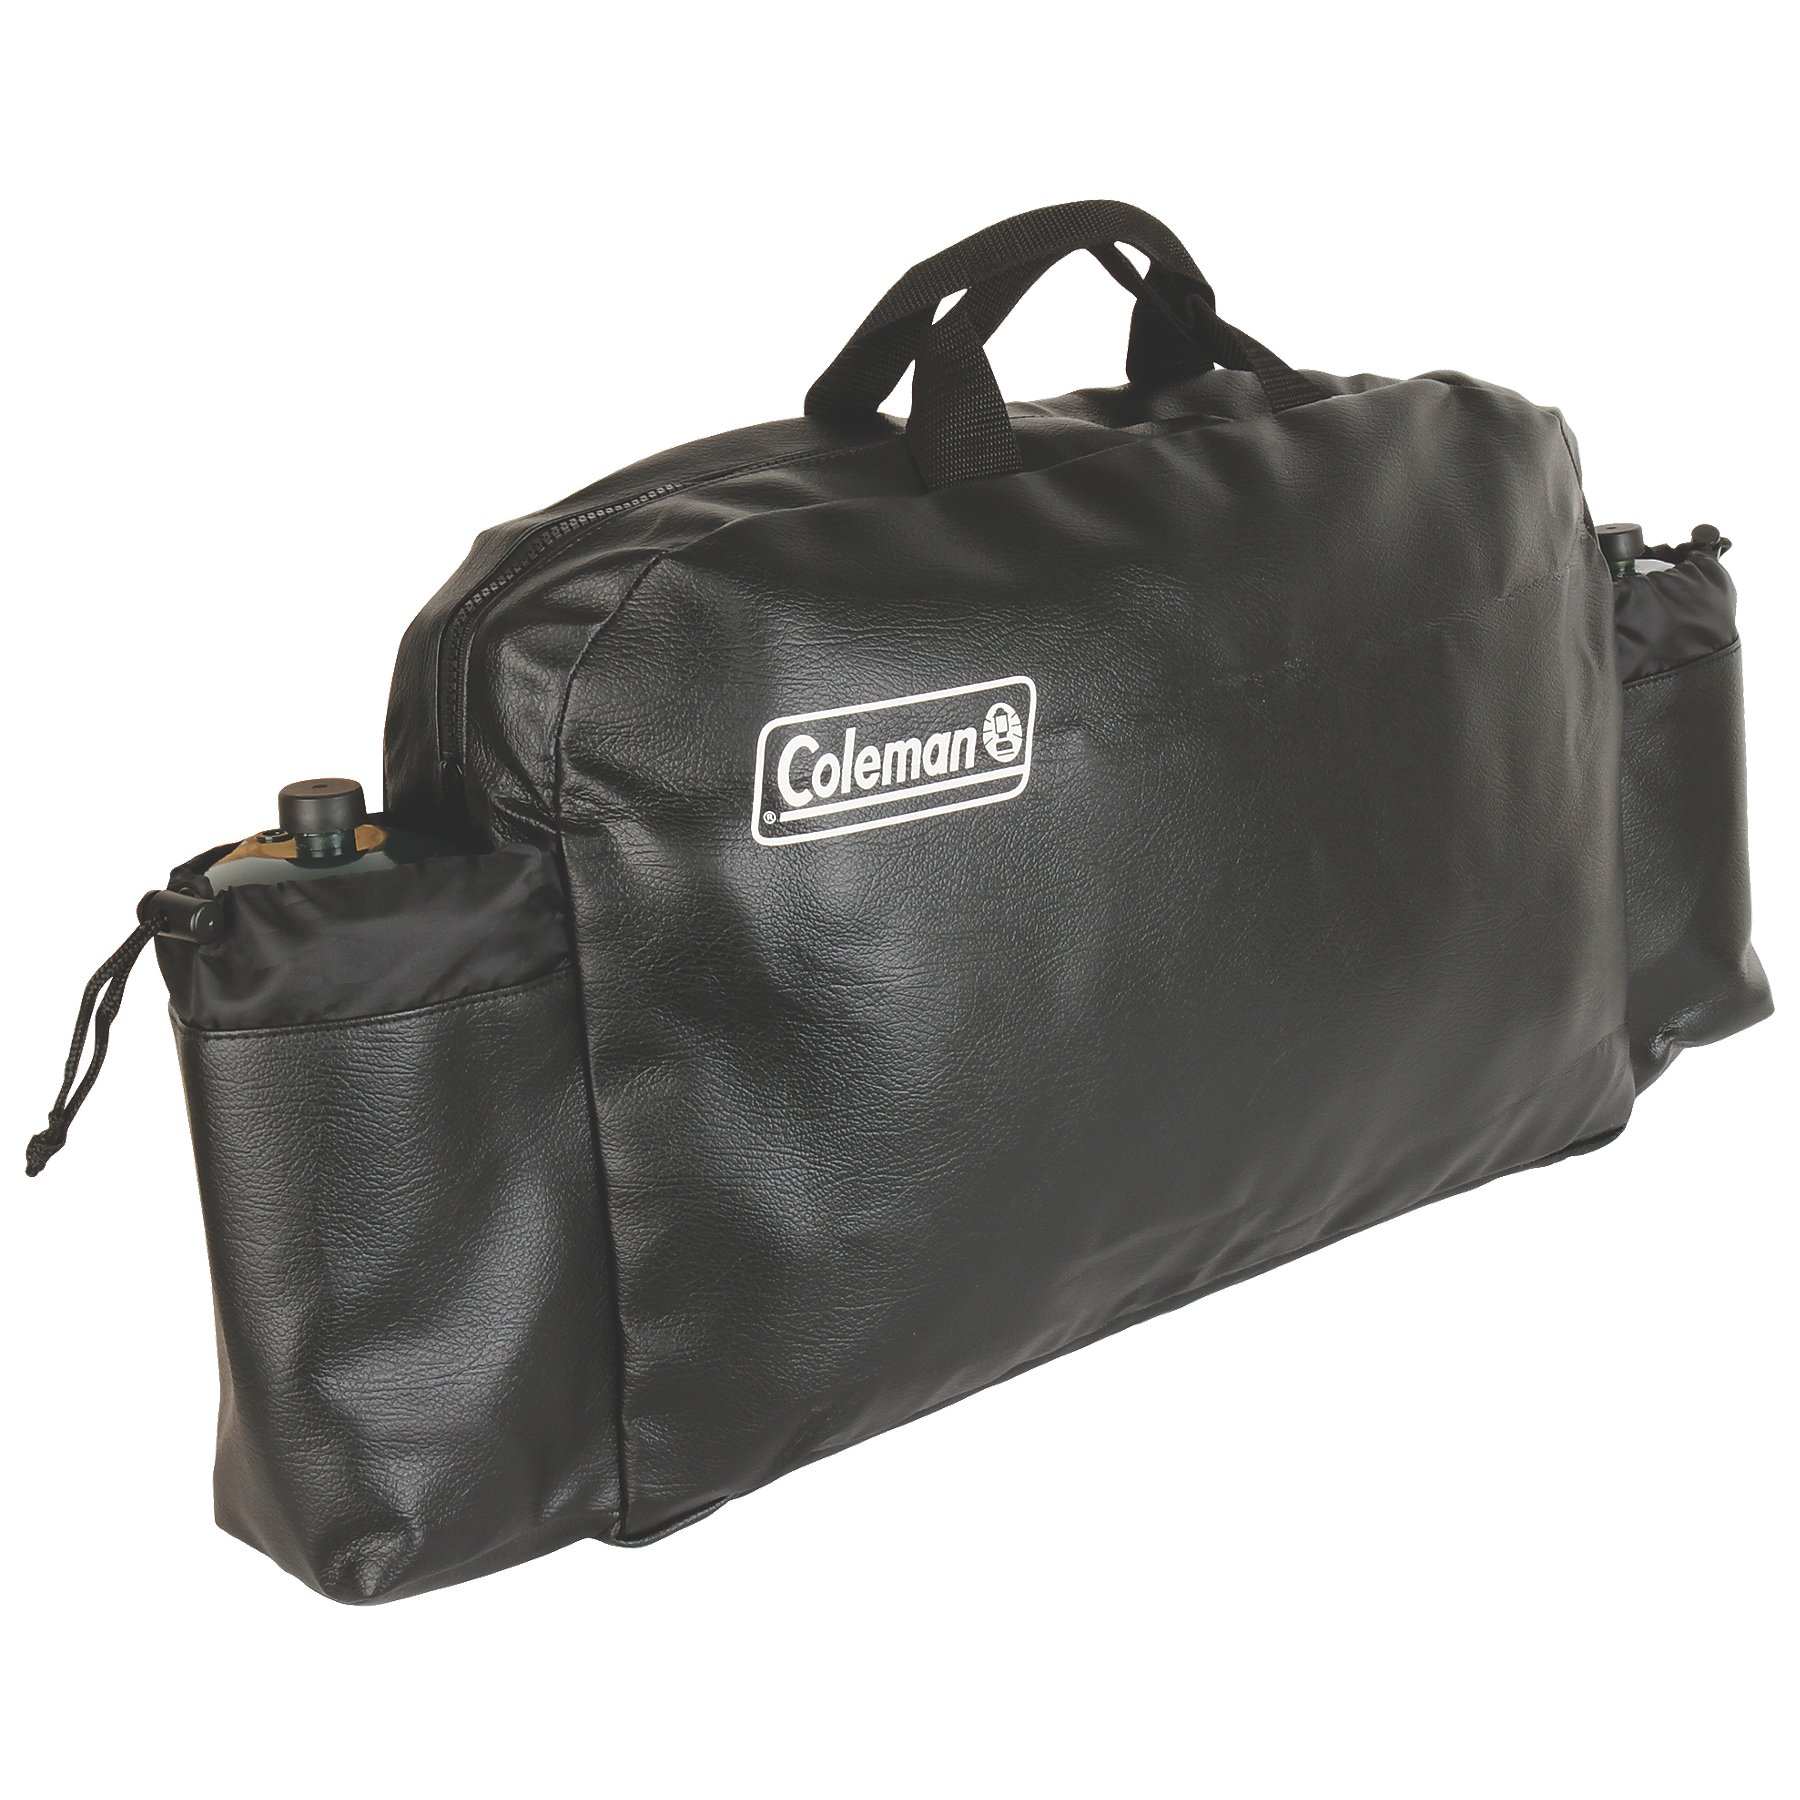 Coleman Small Stove Carry Case,Black,20'' W x 6.5'' L x 13'' H